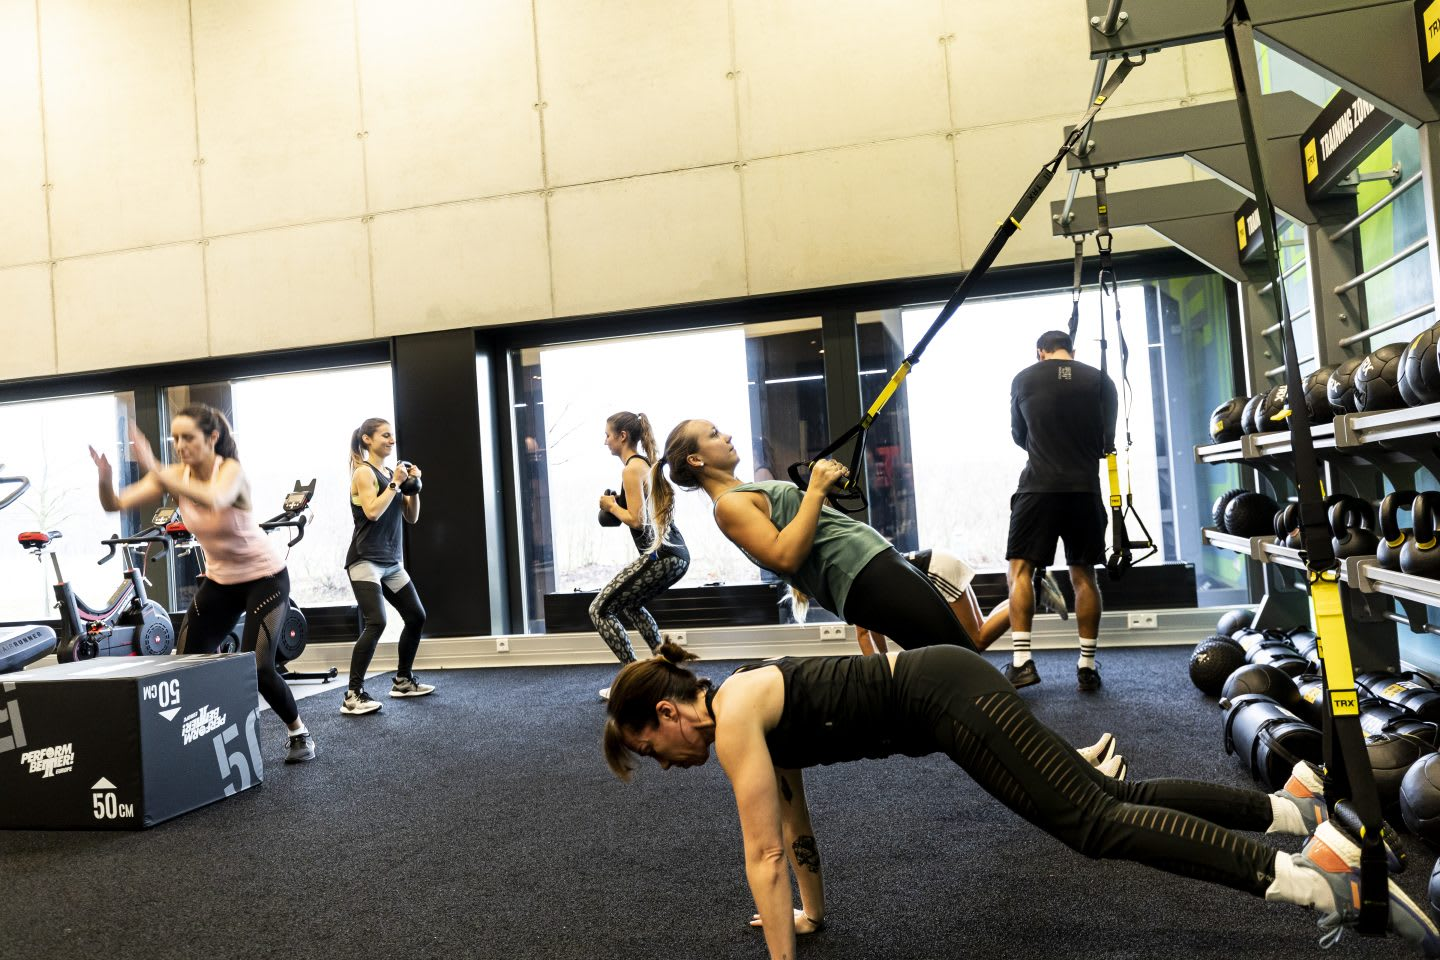 Men and women using workout equipment while exercising during a workout class at a gym, GYM, Herzogenaurach, adidas, employees, workplace, fitness. sports, culture, active, health, lifestyle